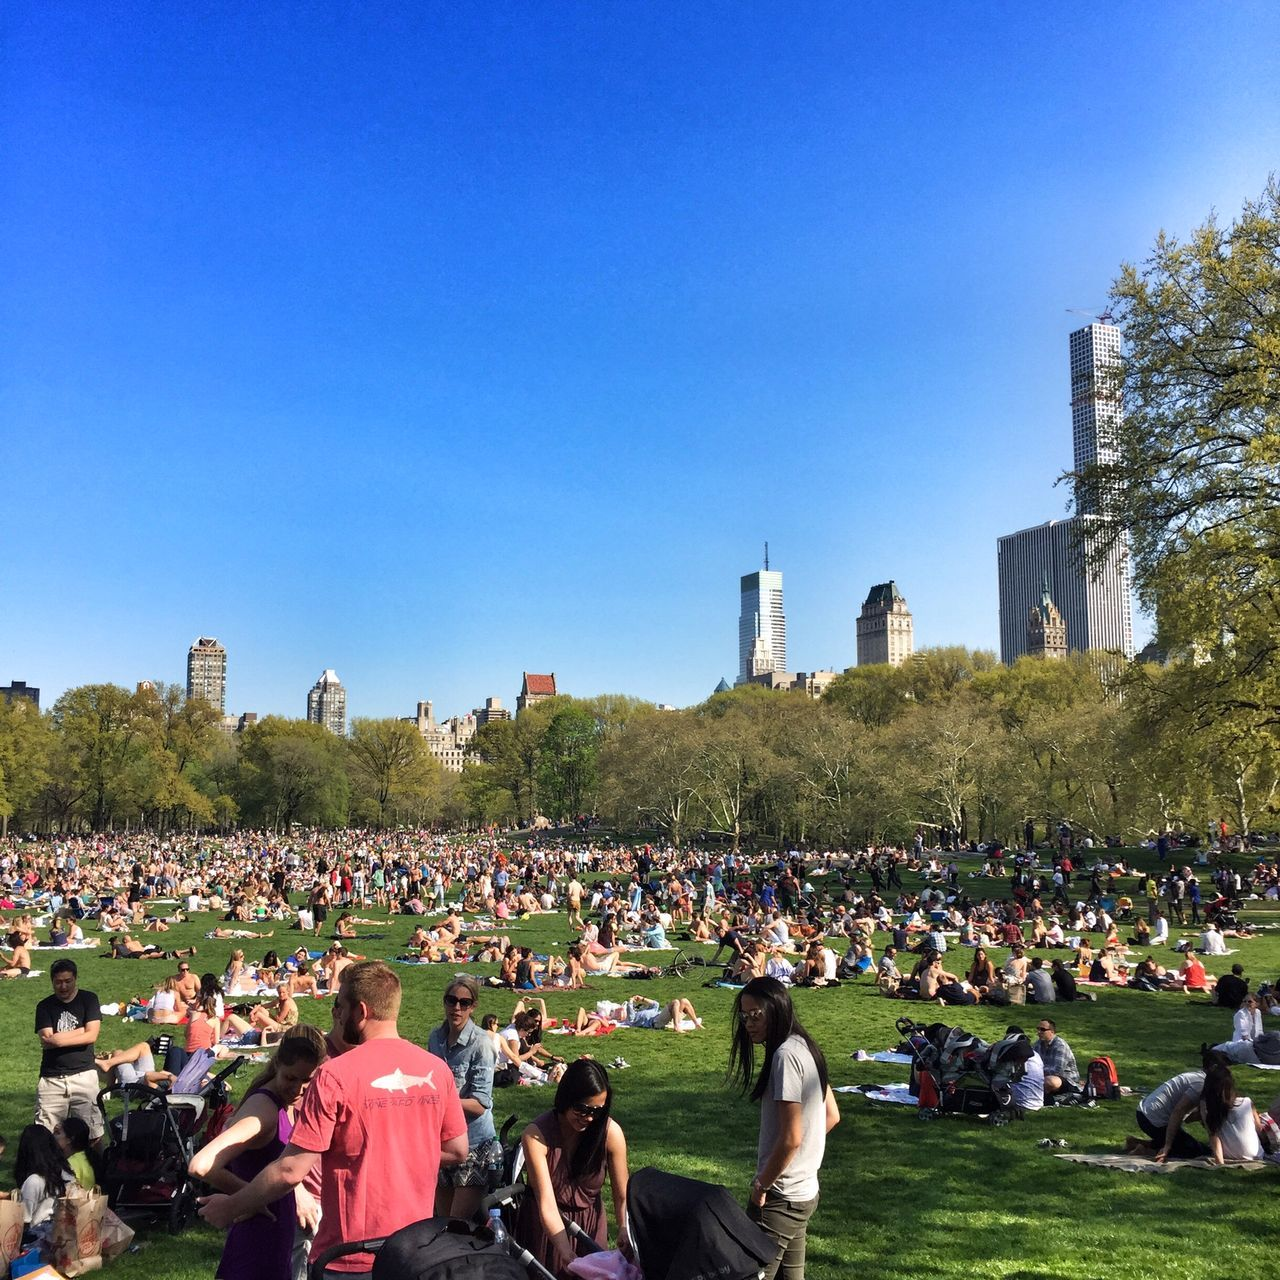 Central Park Summer Sheep Meadow New York New York City People Public Space Cityscape NYC Park Battle Of The Cities